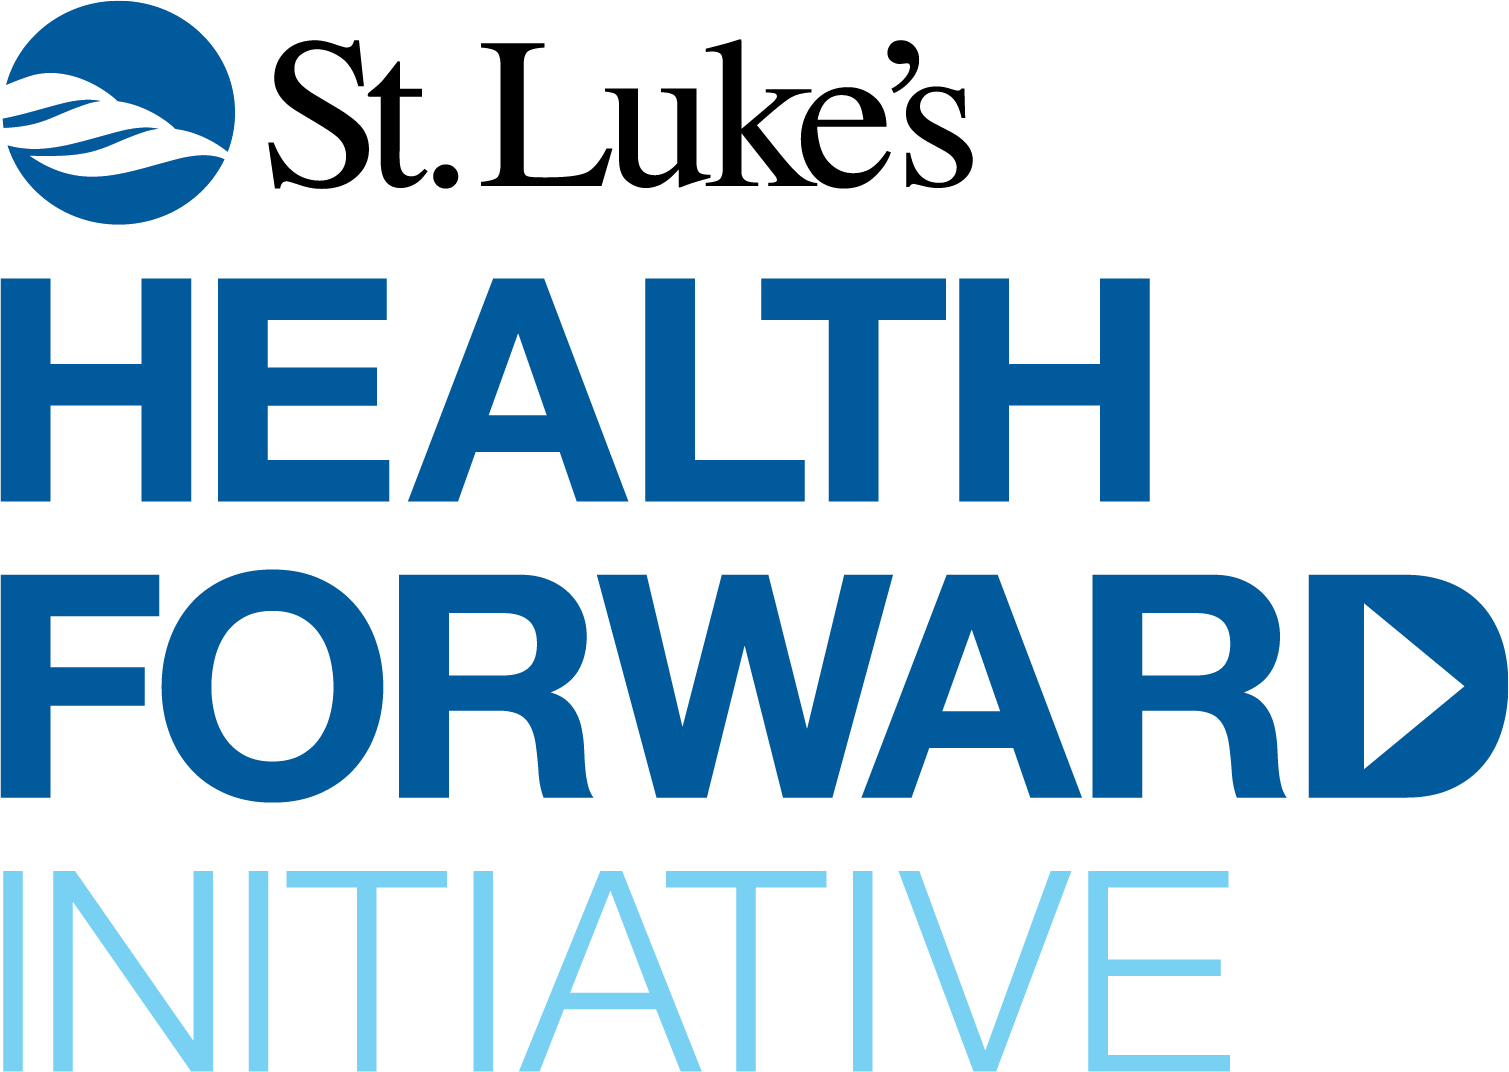 St. Luke's Health Forward Initiative Logo